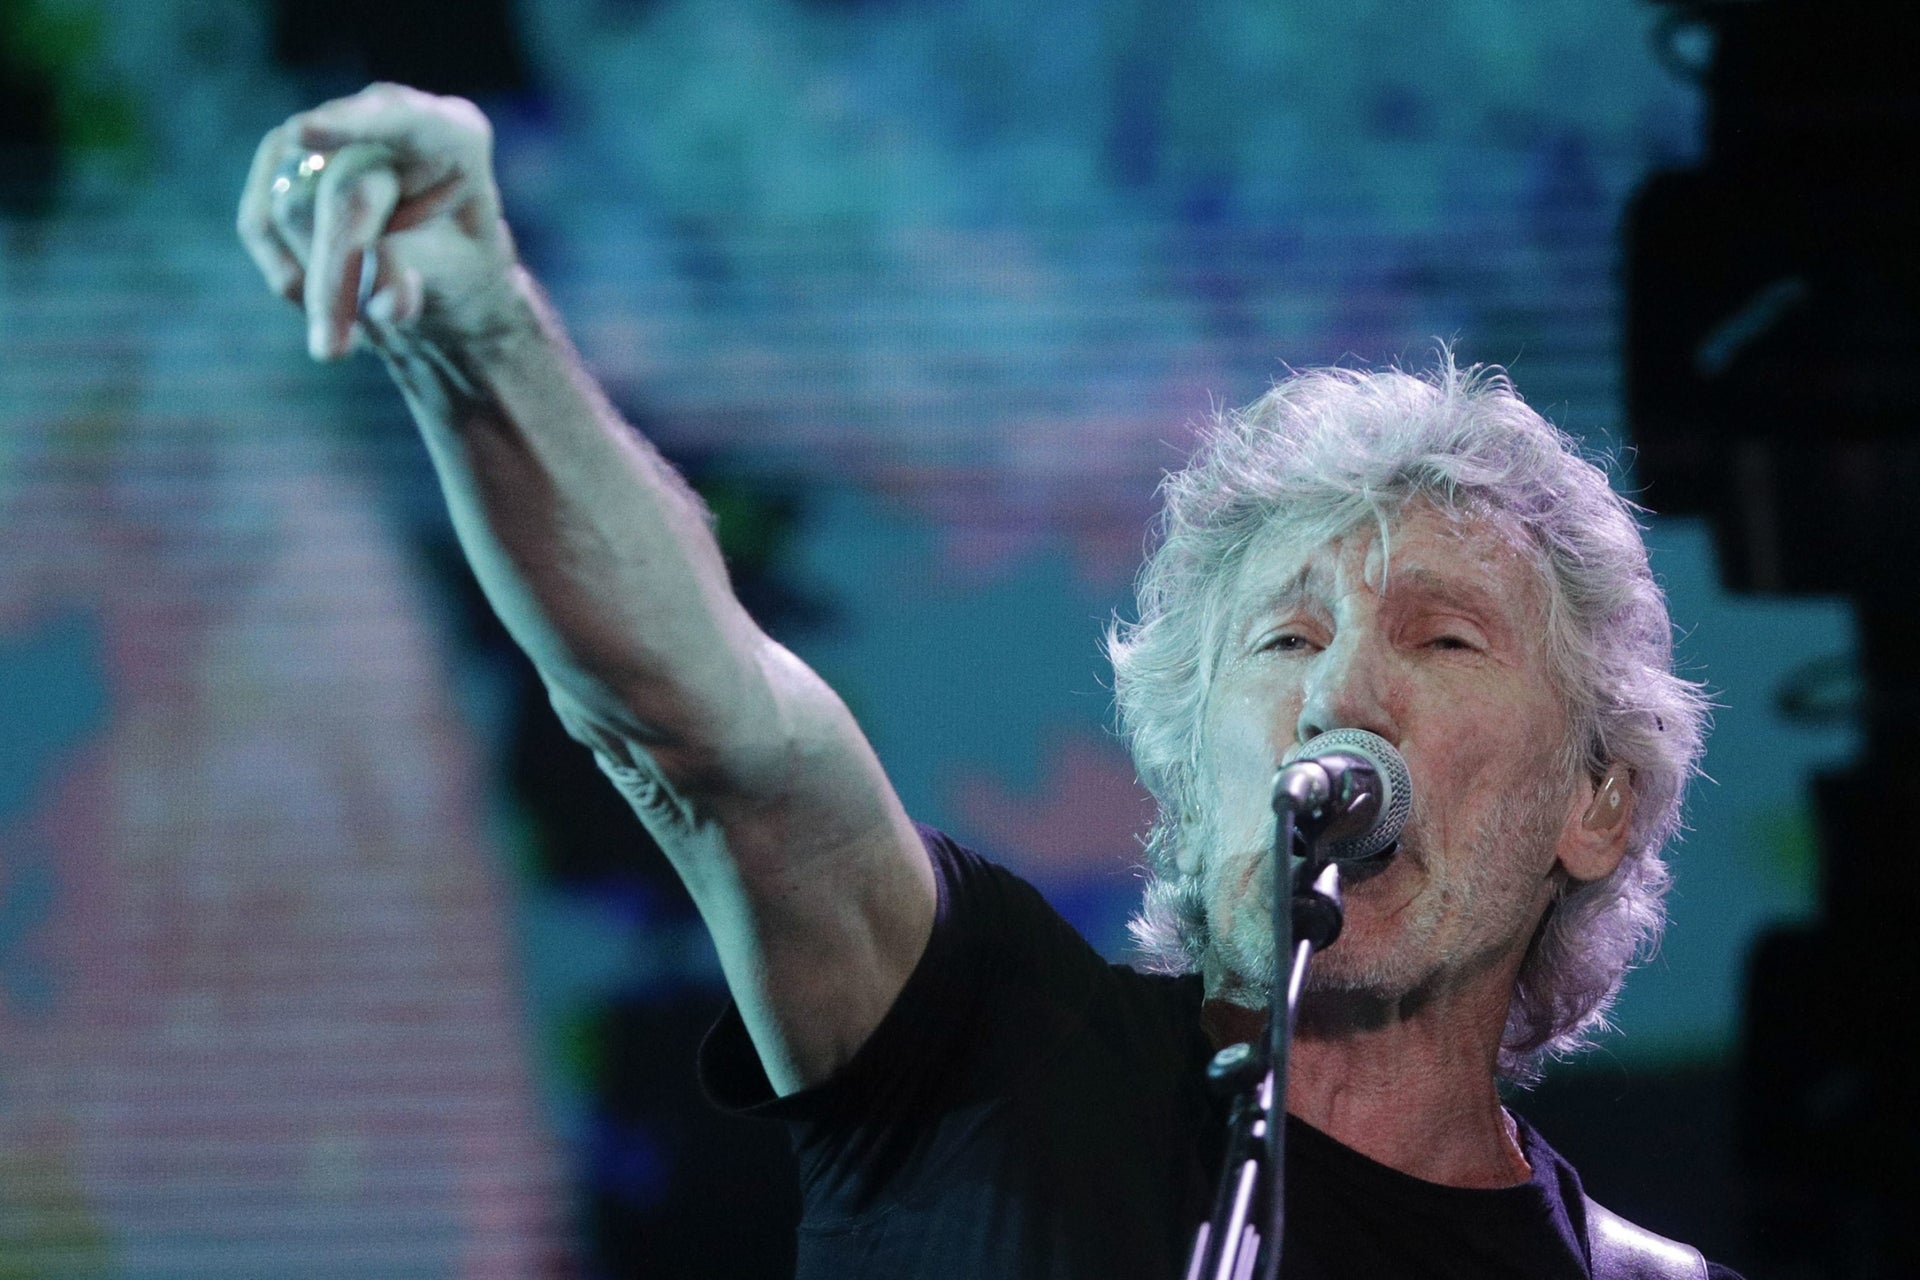 Roger Waters performing in Italy. One of the most prominent musicians linked to the boycott, divestment and sanctions movement